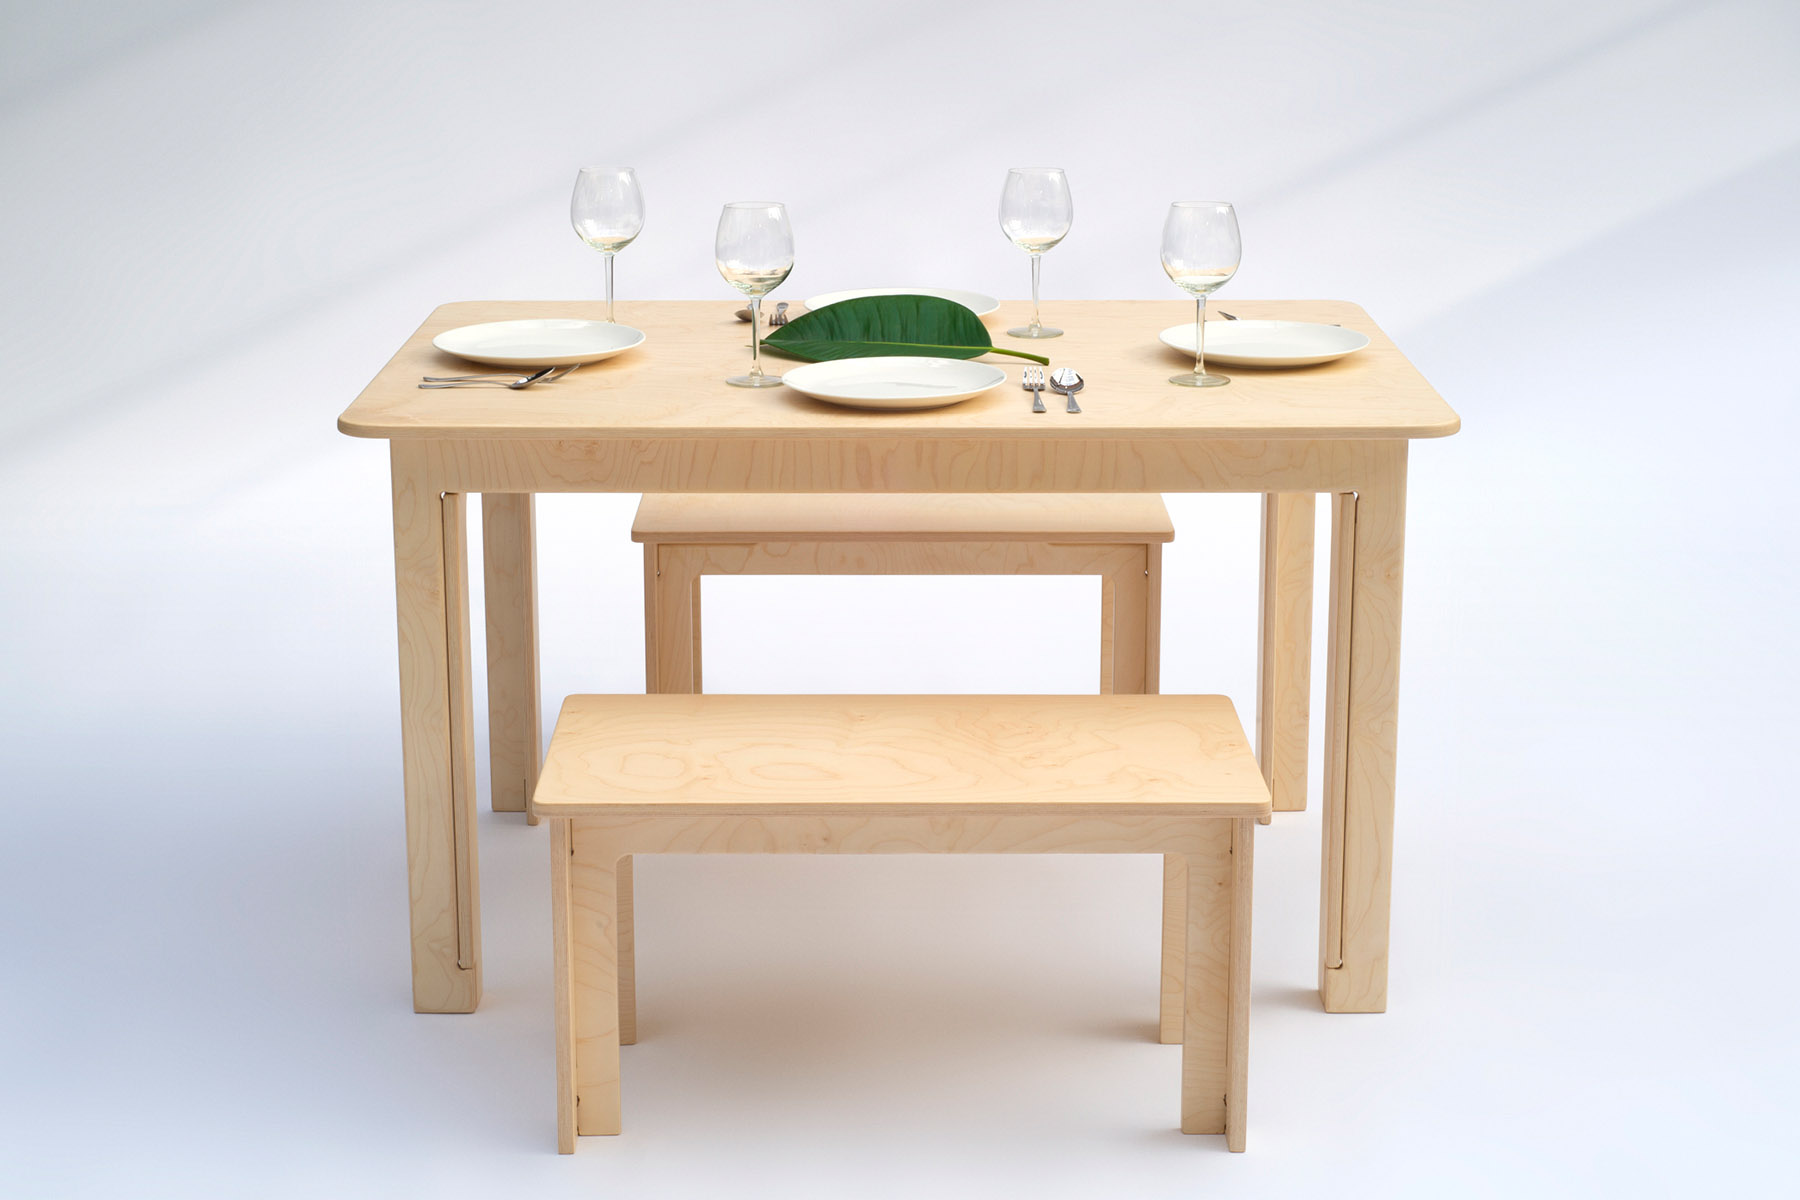 Table and benches in maple plywood without fasteners